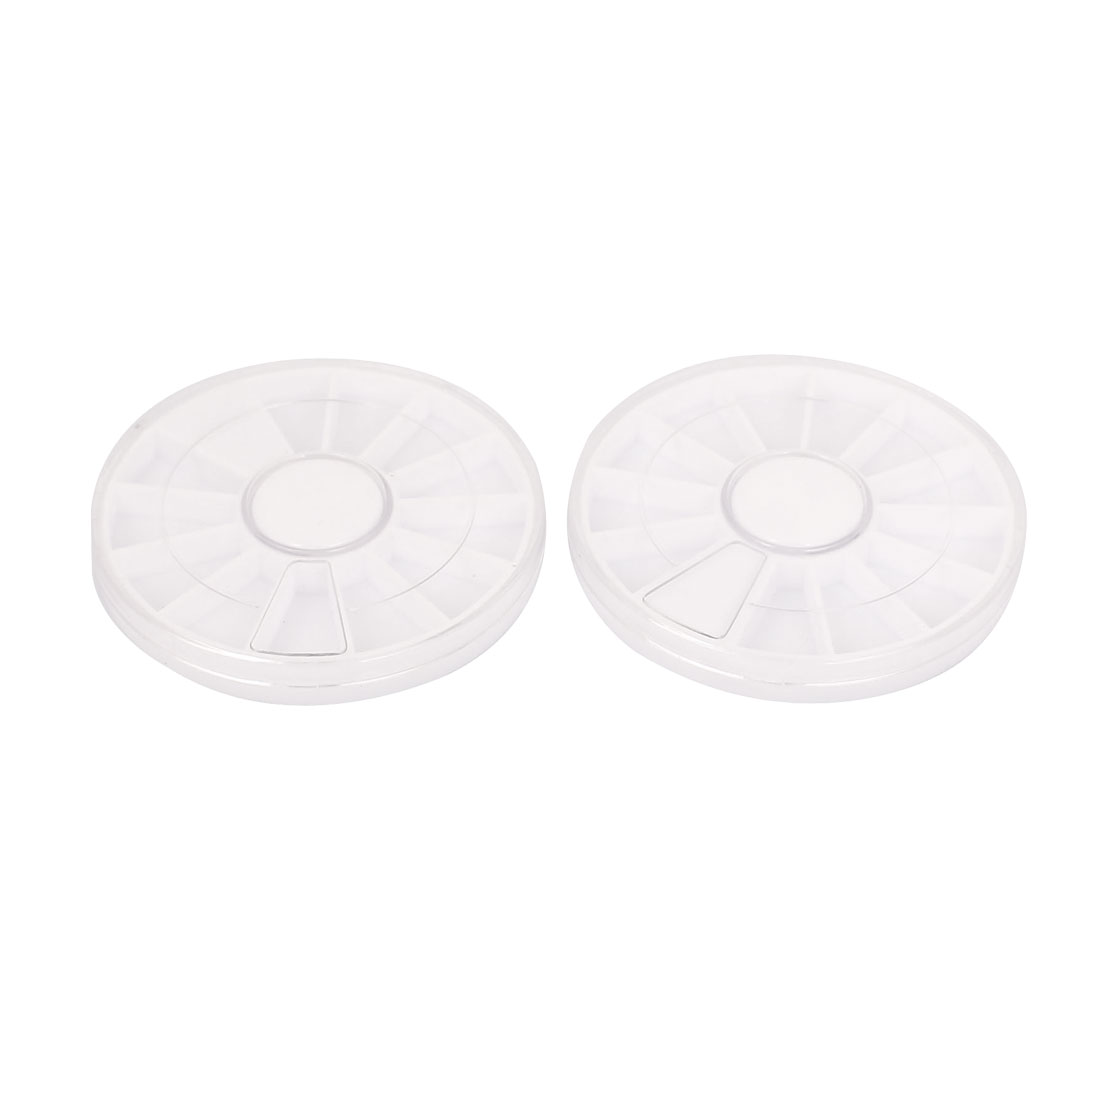 White Clear Plastic Round Rotatable 12 Components Storage Box Holder 2pcs